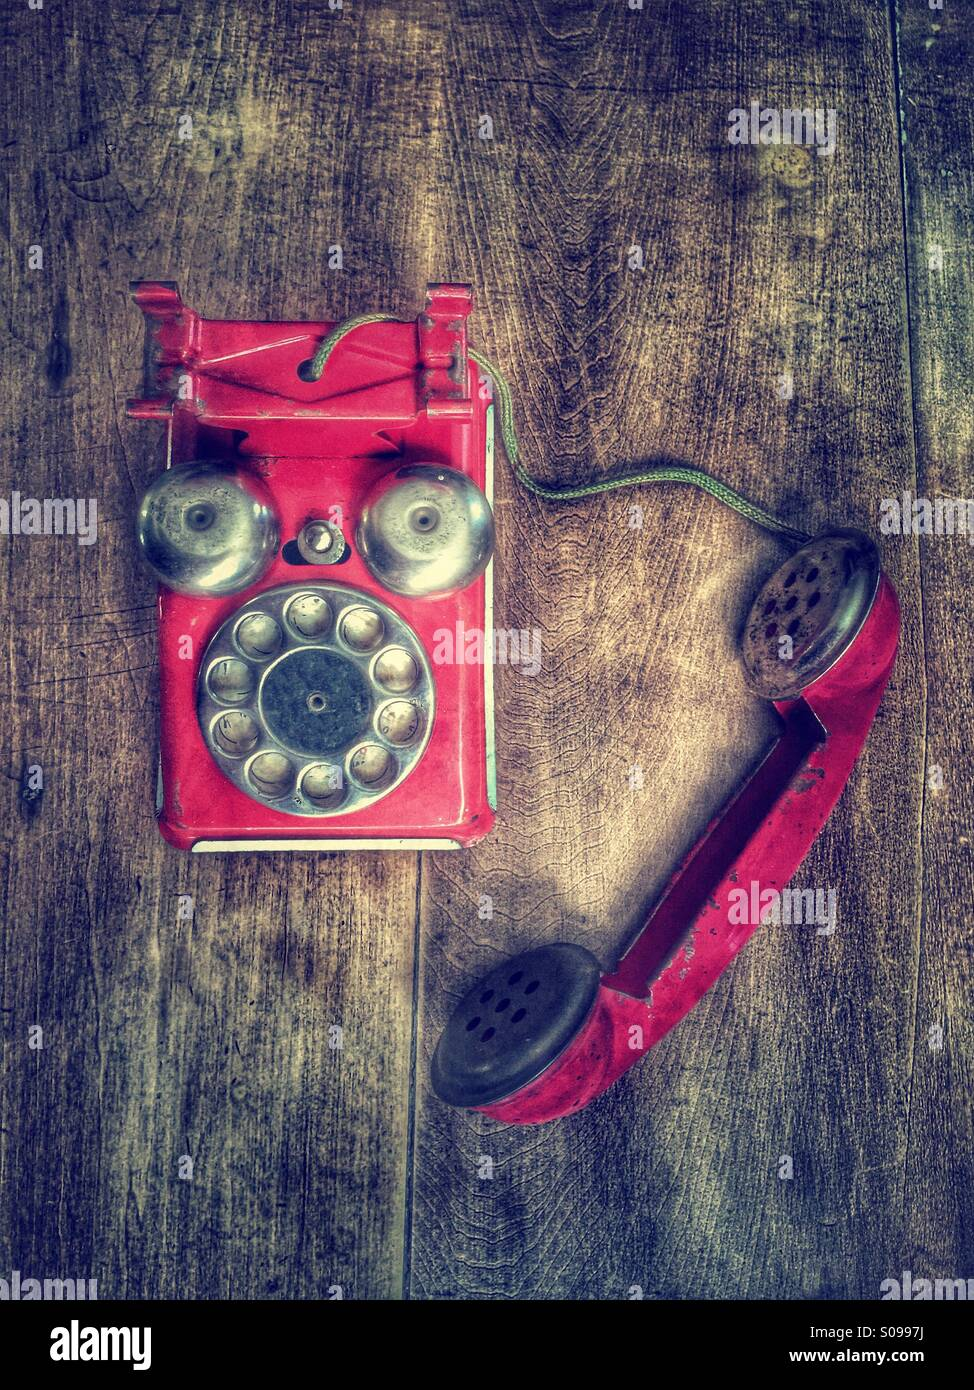 Red vintage toy telephone. - Stock Image